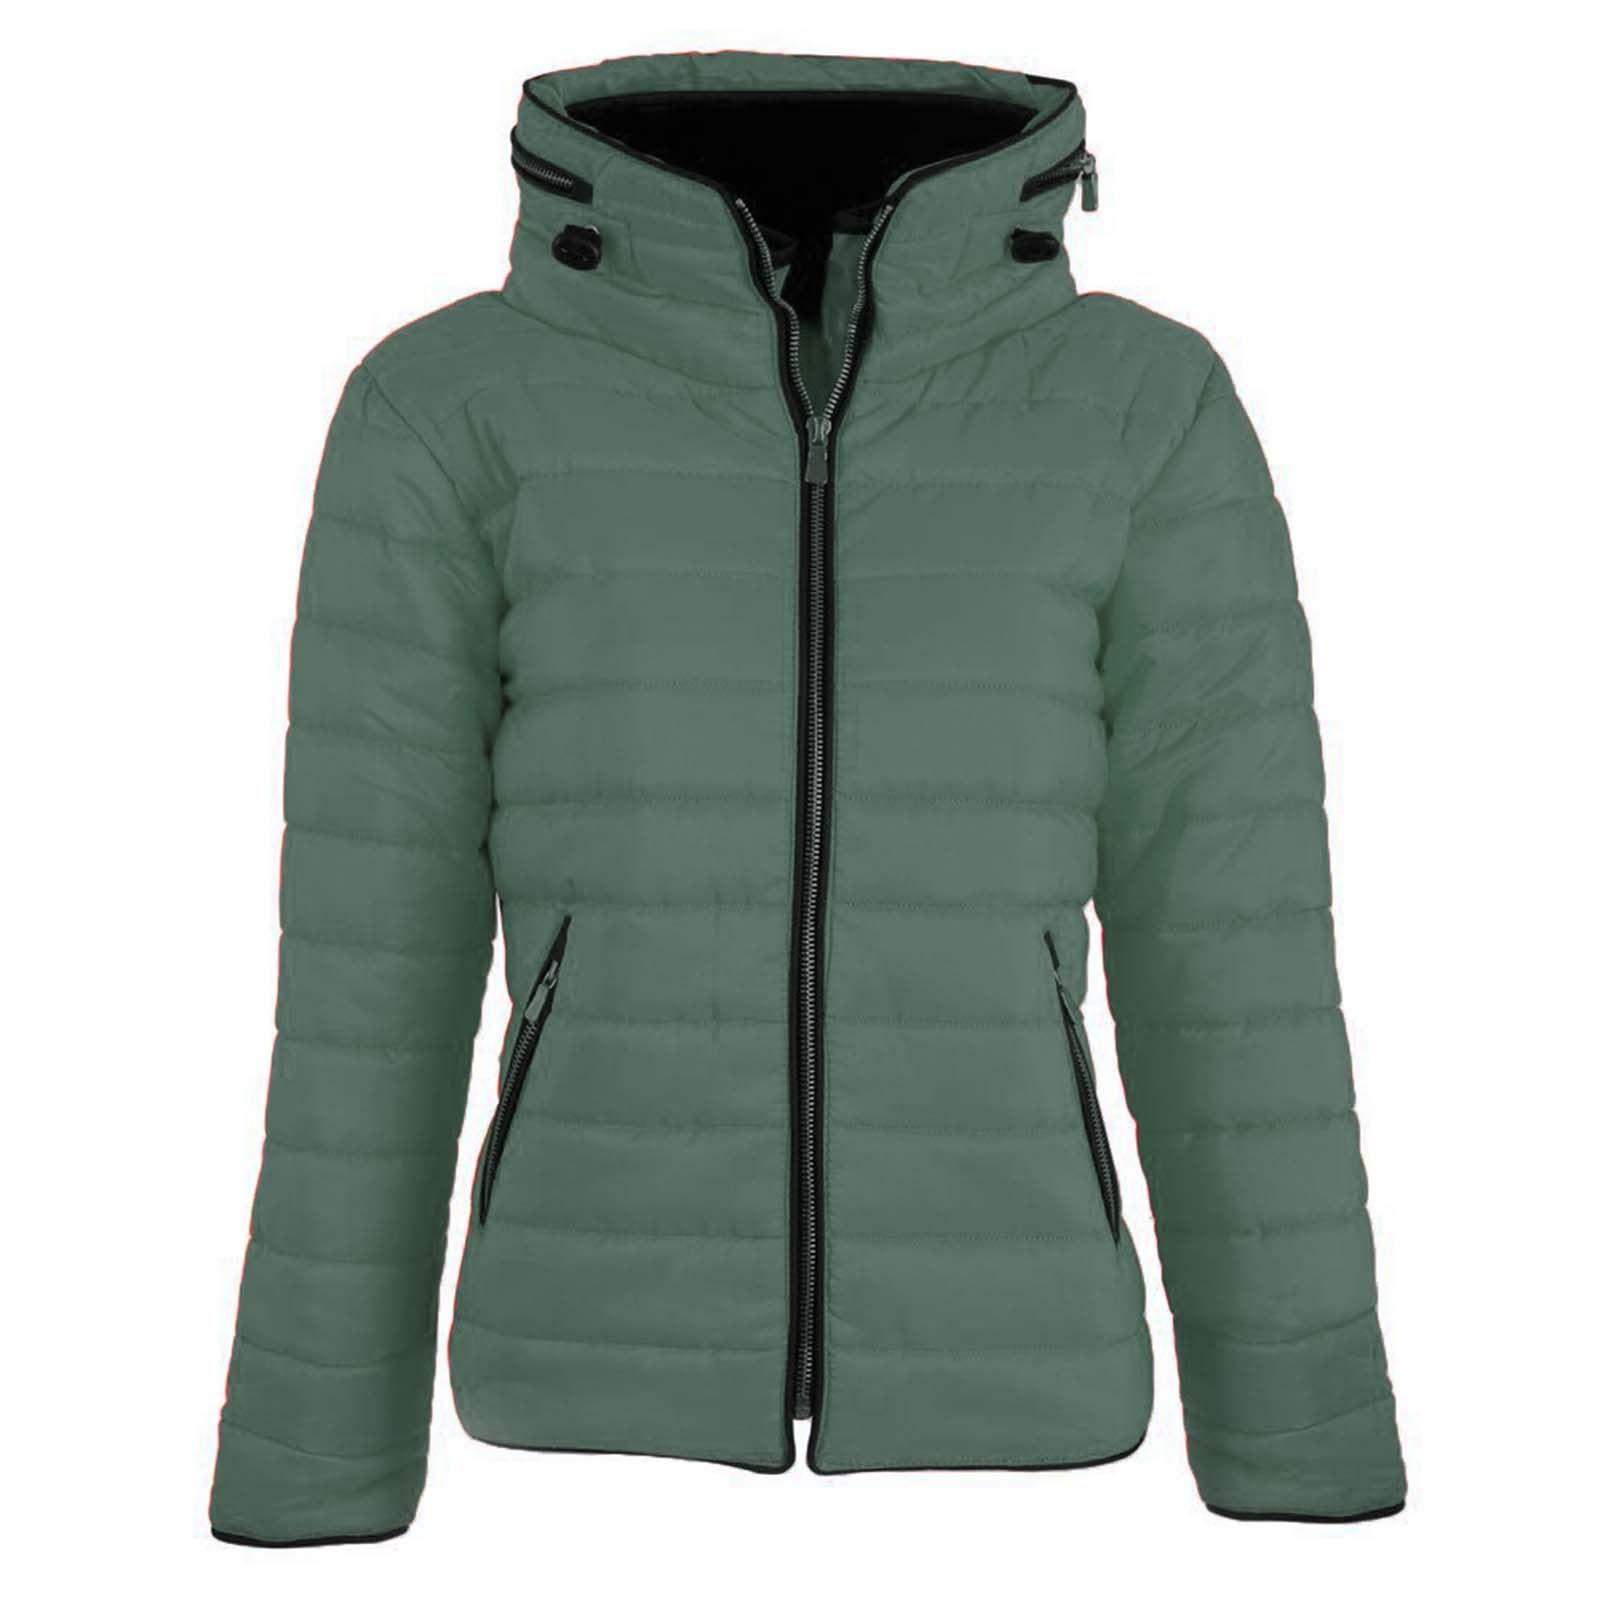 a007cabc0679a Ladies Padded Quilted Bubble Puffer Hooded Jacket Womens Thick Zip up Parka  Coat M (uk-10) Khaki. About this product. Picture 1 of 2  Picture 2 of 2